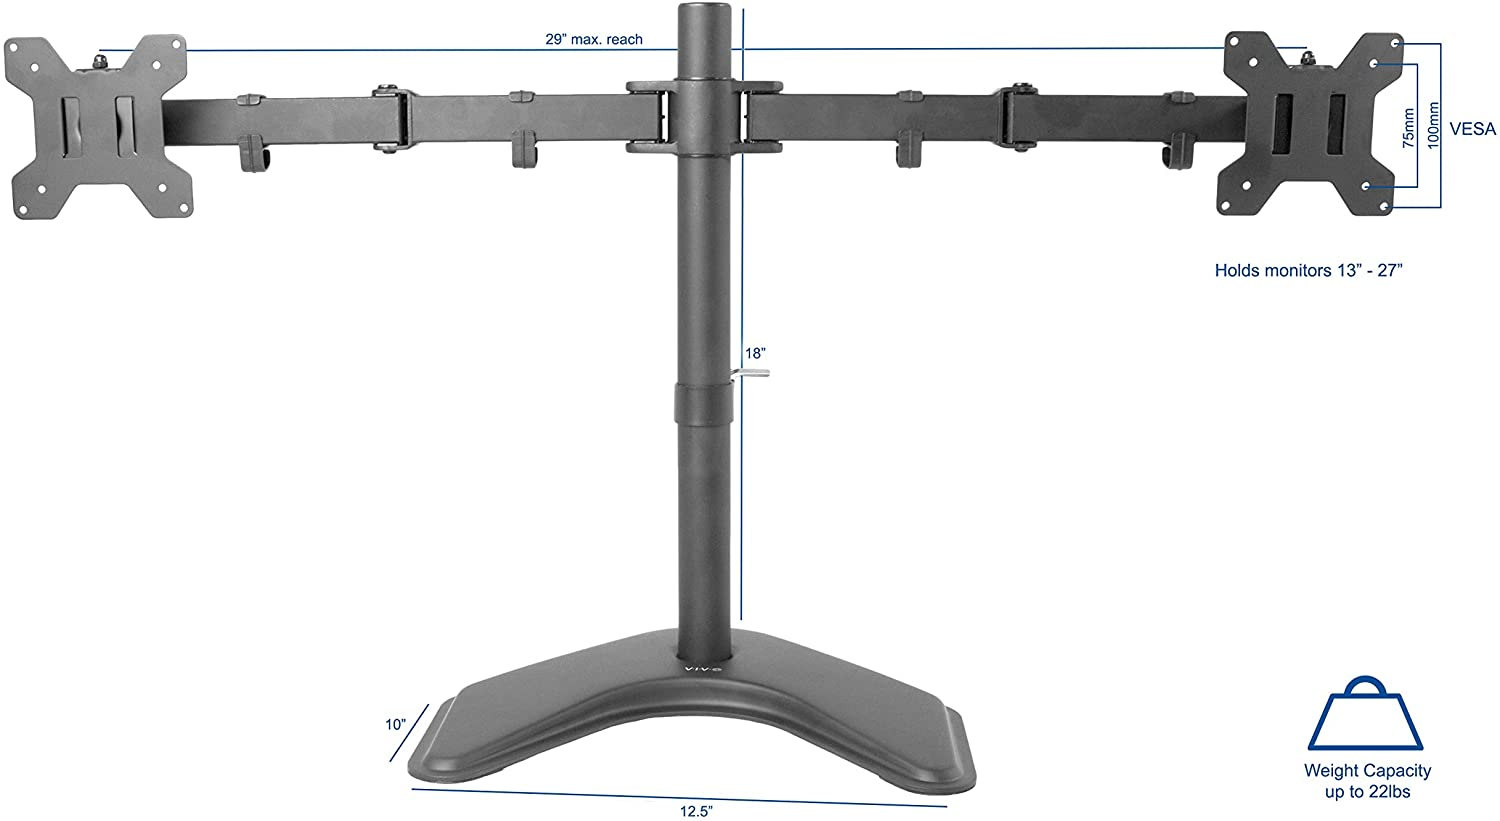 VIVO Dual LED LCD Monitor Free-Standing Desk Stand for 2 Screens up to 27 inches VESA - 2